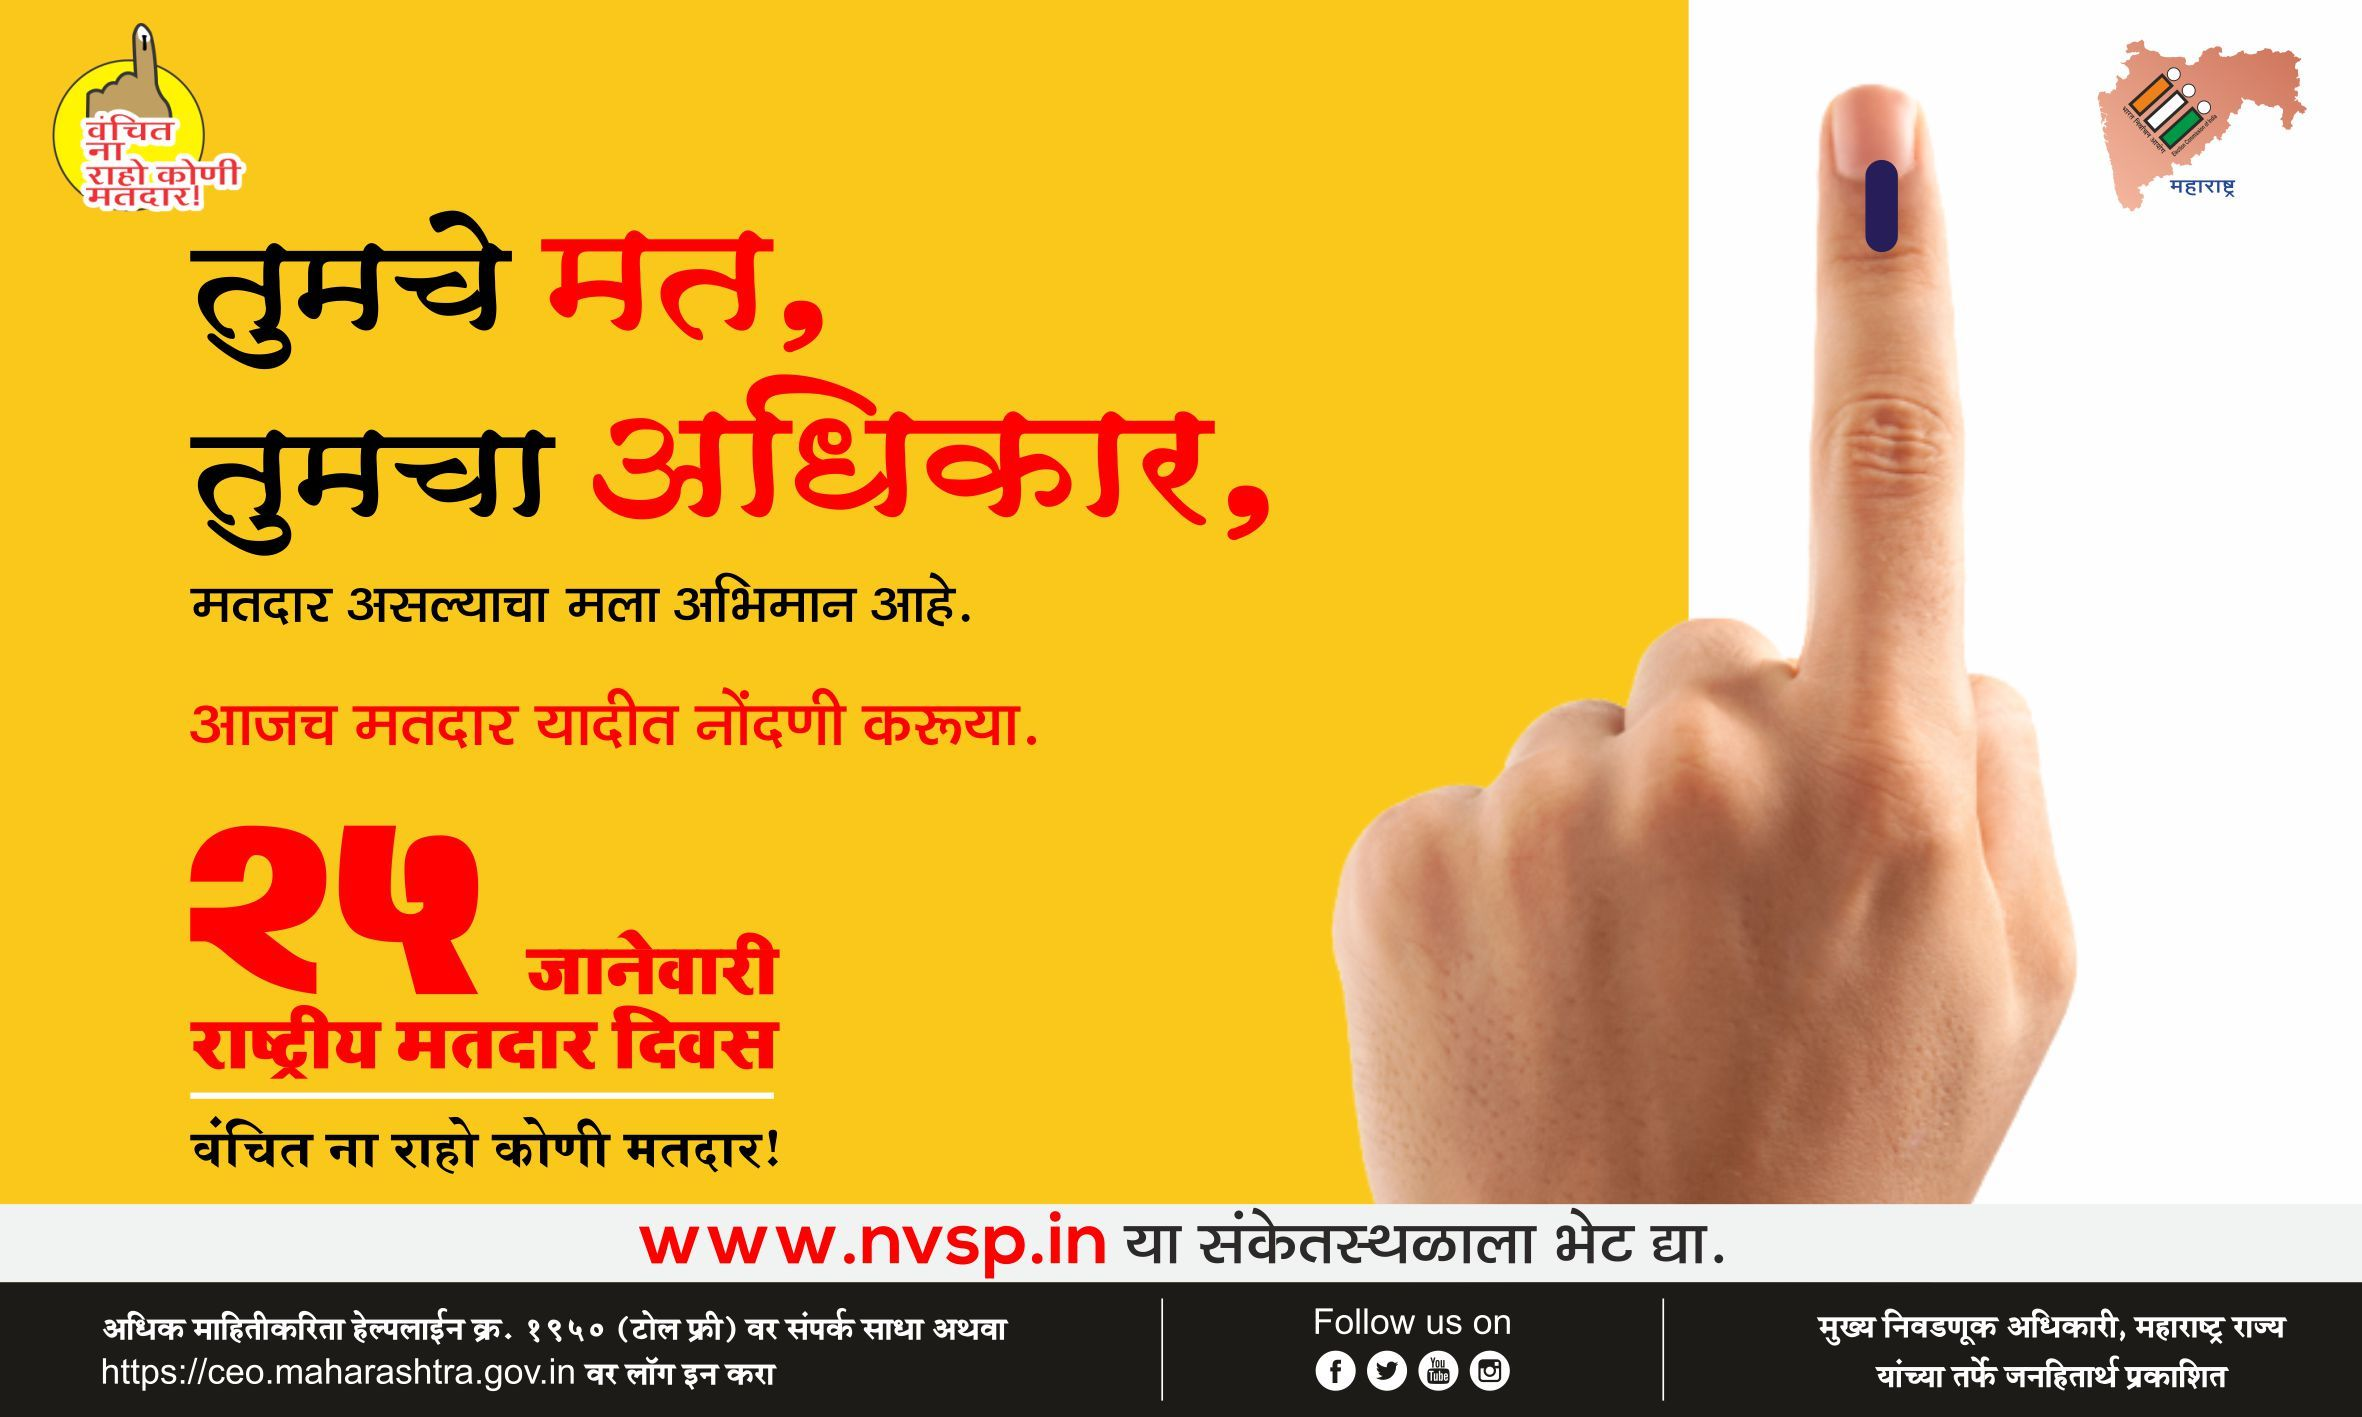 National Voters' Day 2019 Publicity material